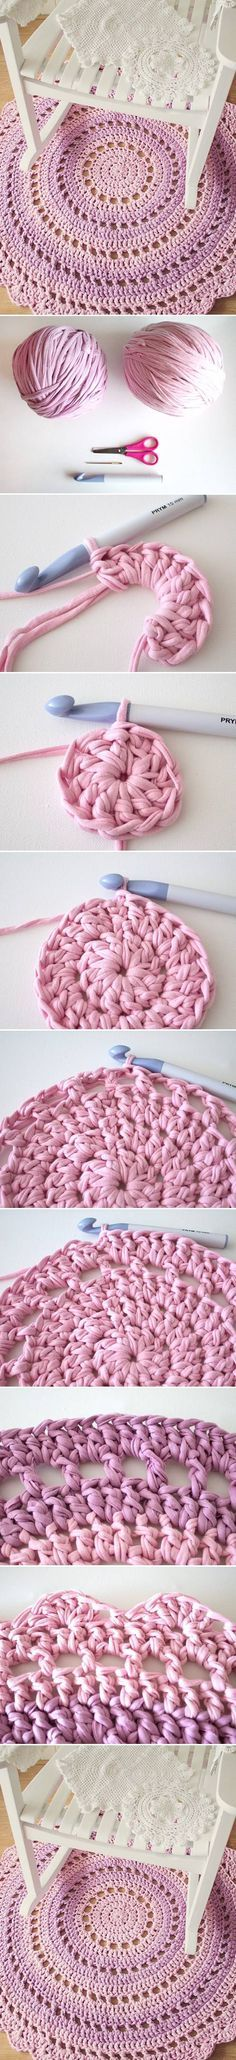 DIY Crochet Mandala Rug 2                                                                                                                                                                                 More